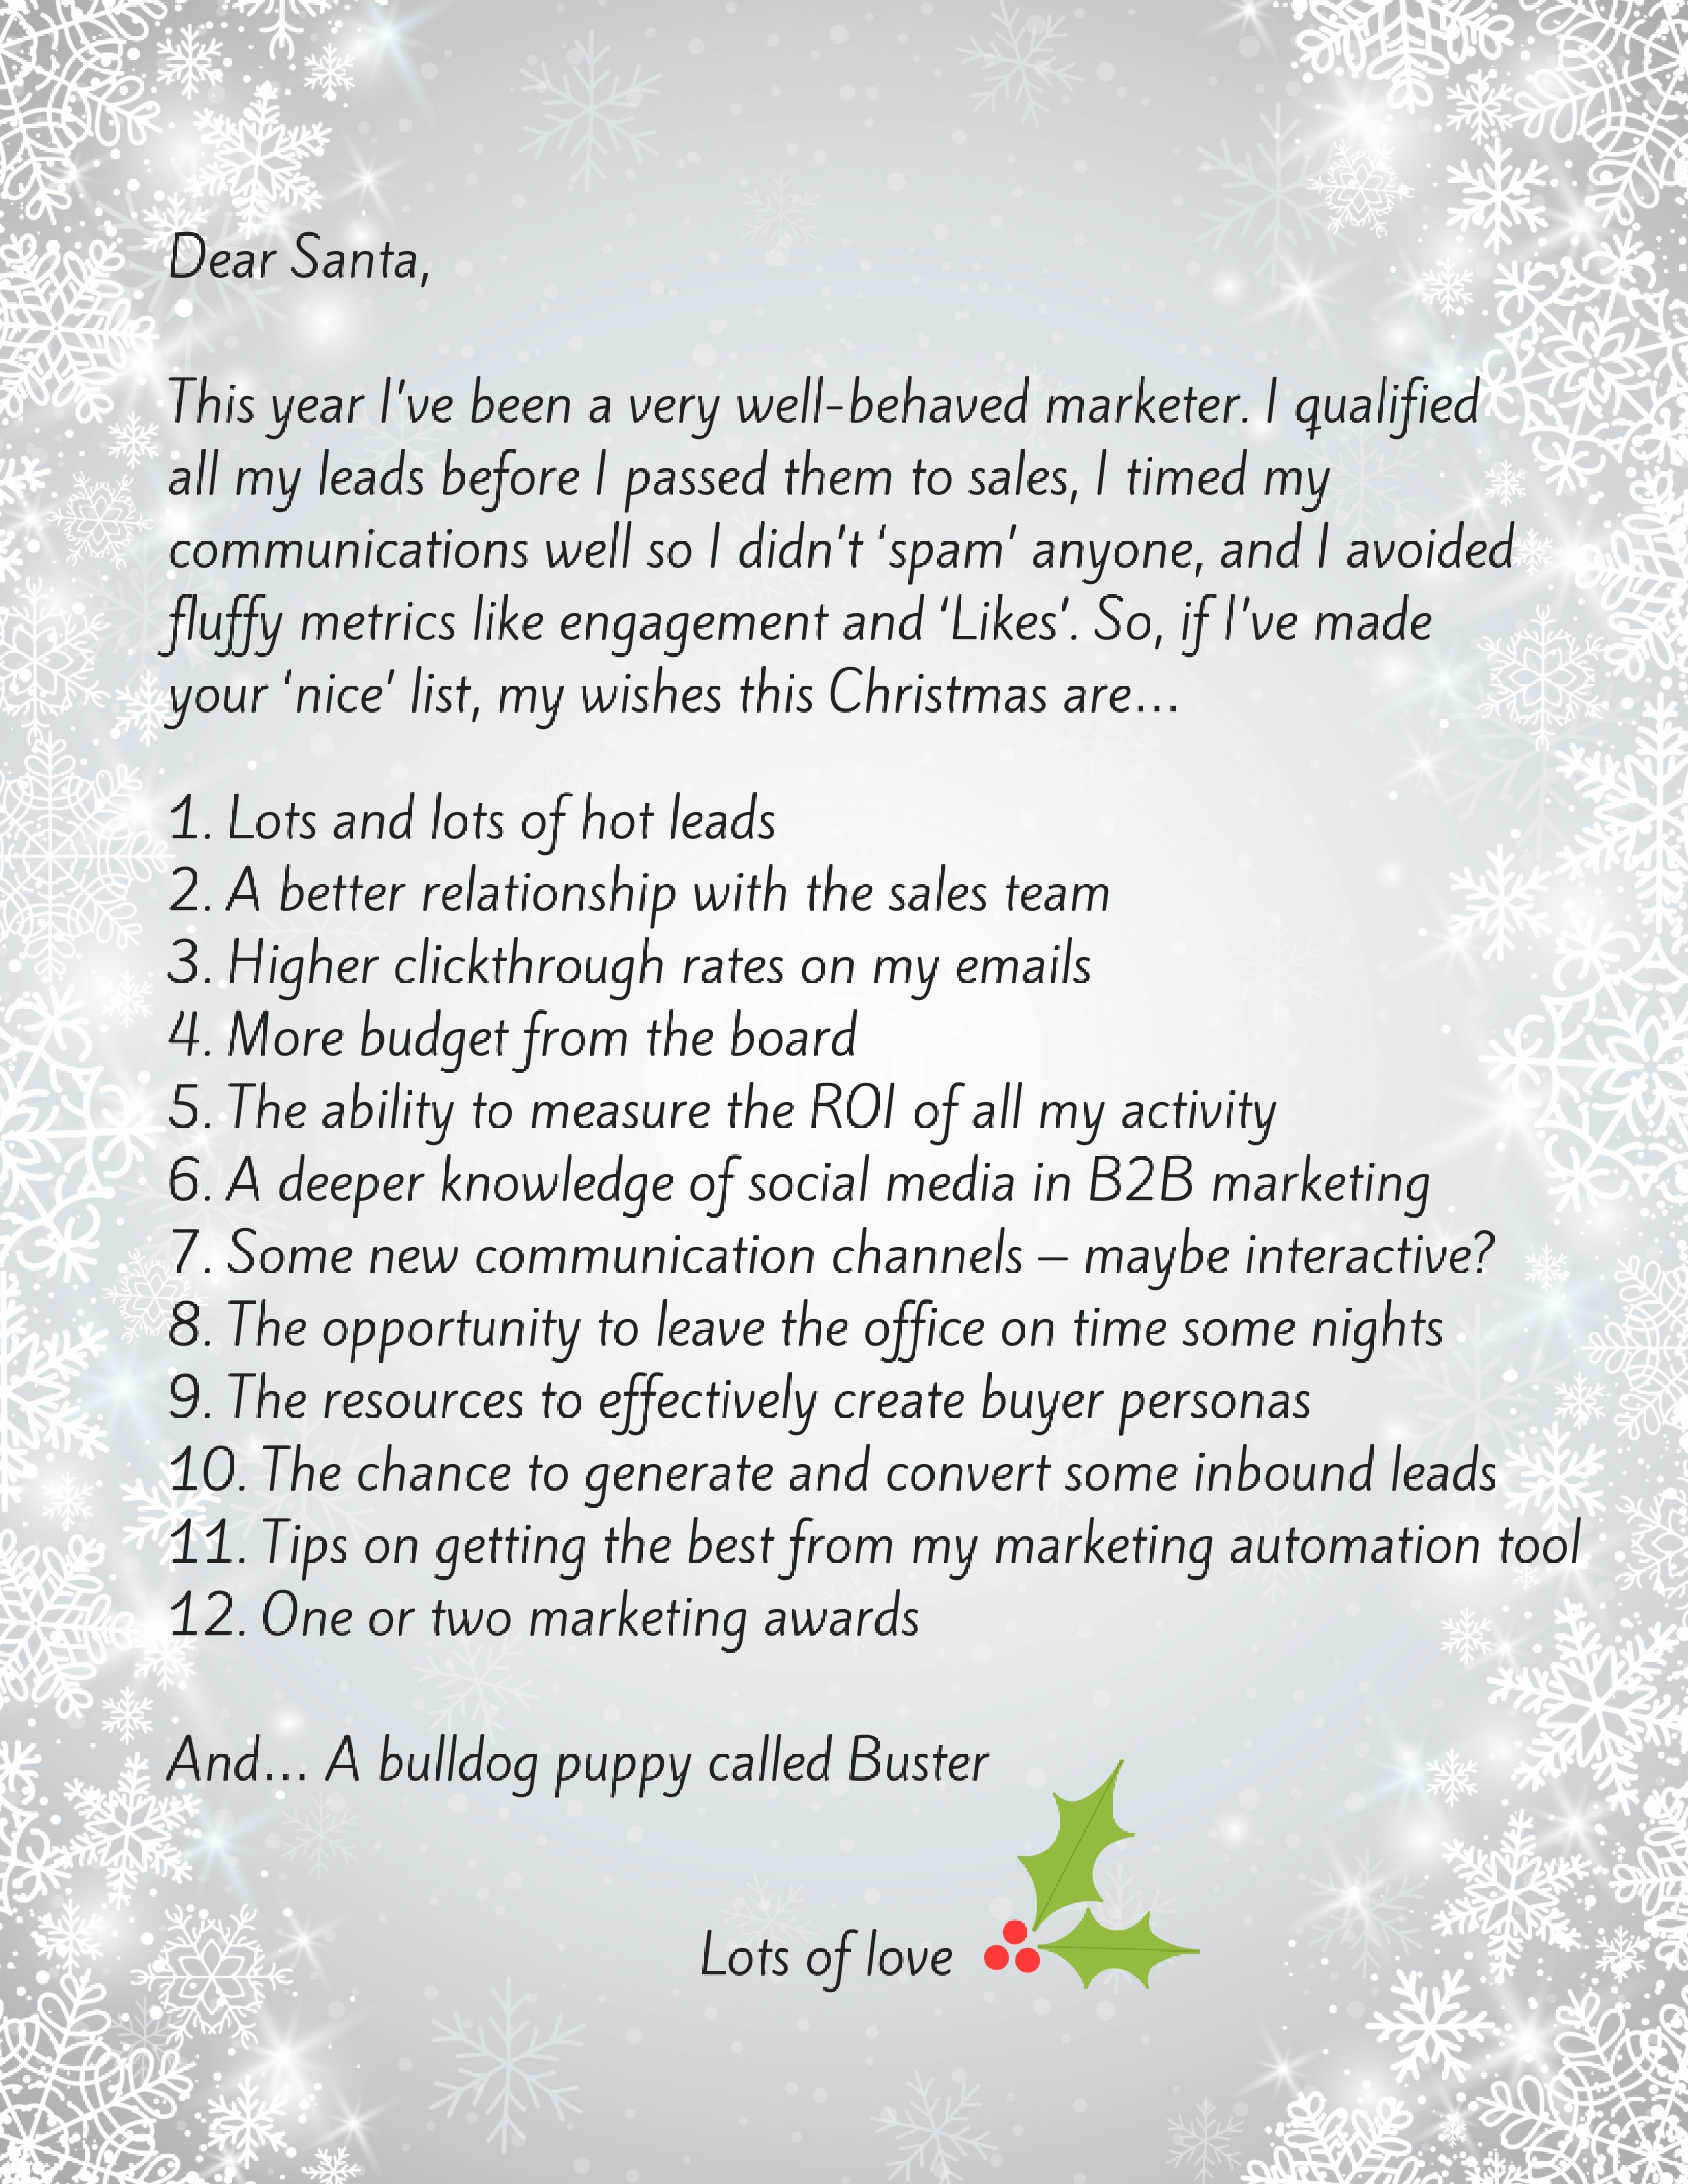 santa-marketers-wishlist.jpg